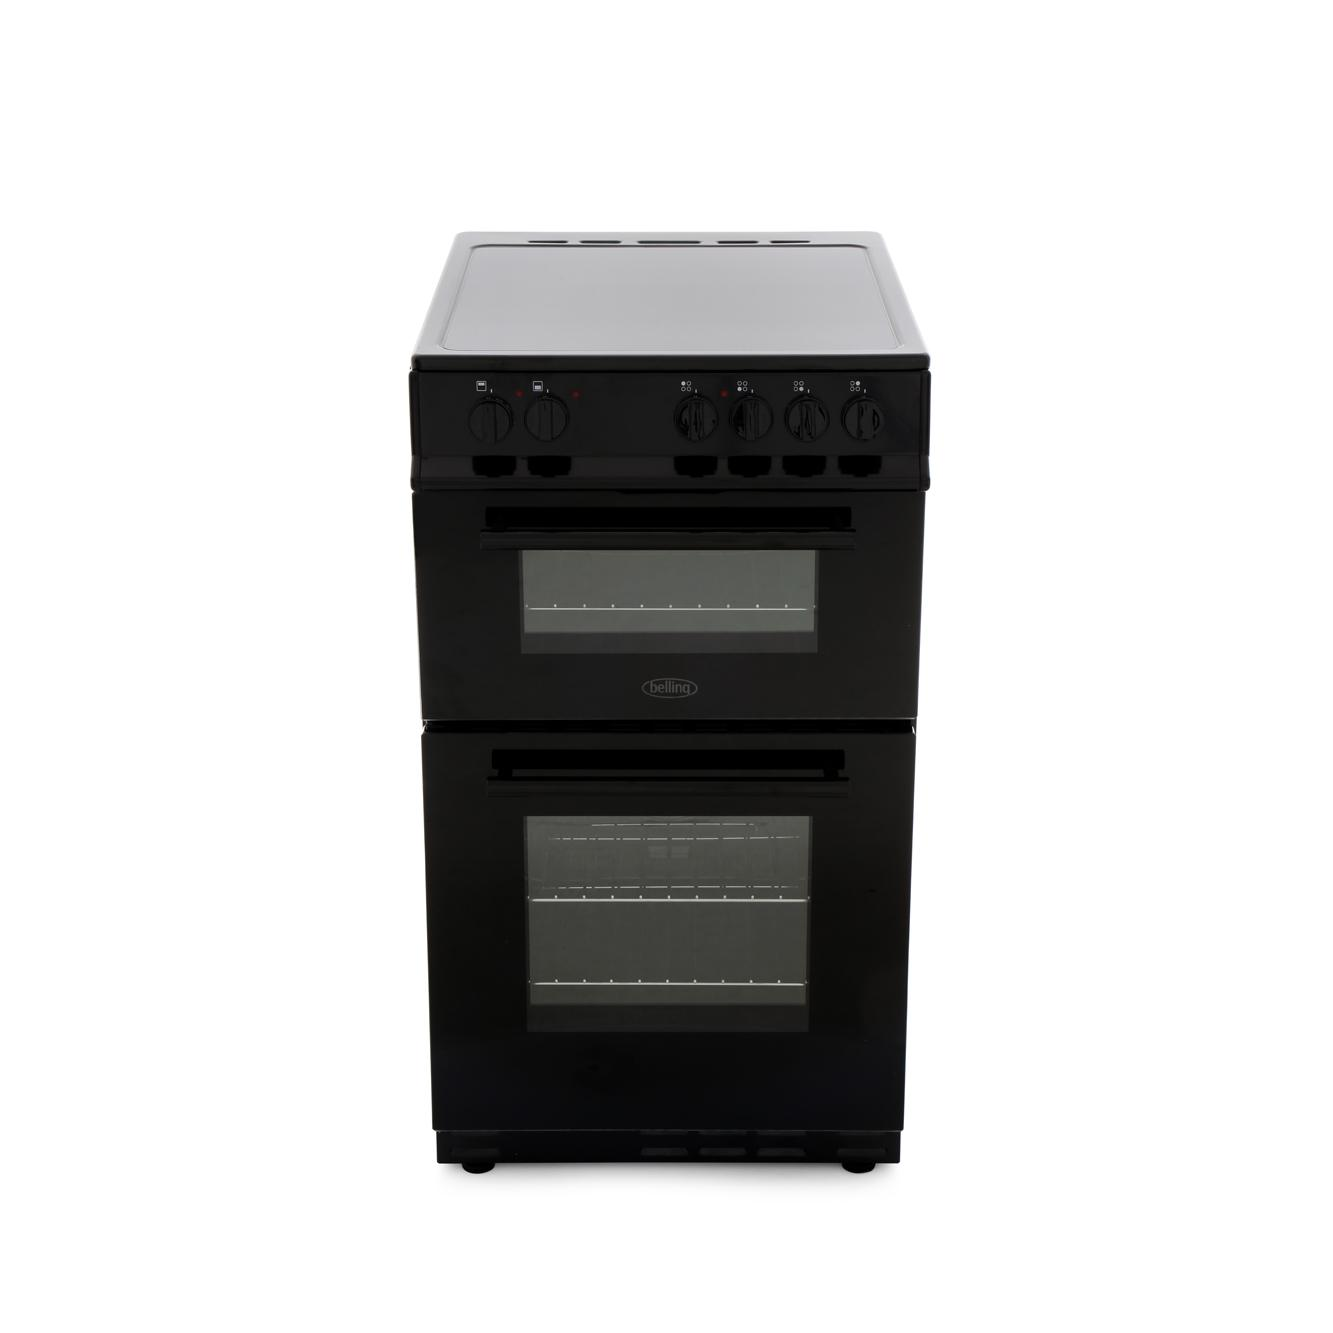 Belling FS50EDOFC Black Ceramic Electric Cooker with Double Oven